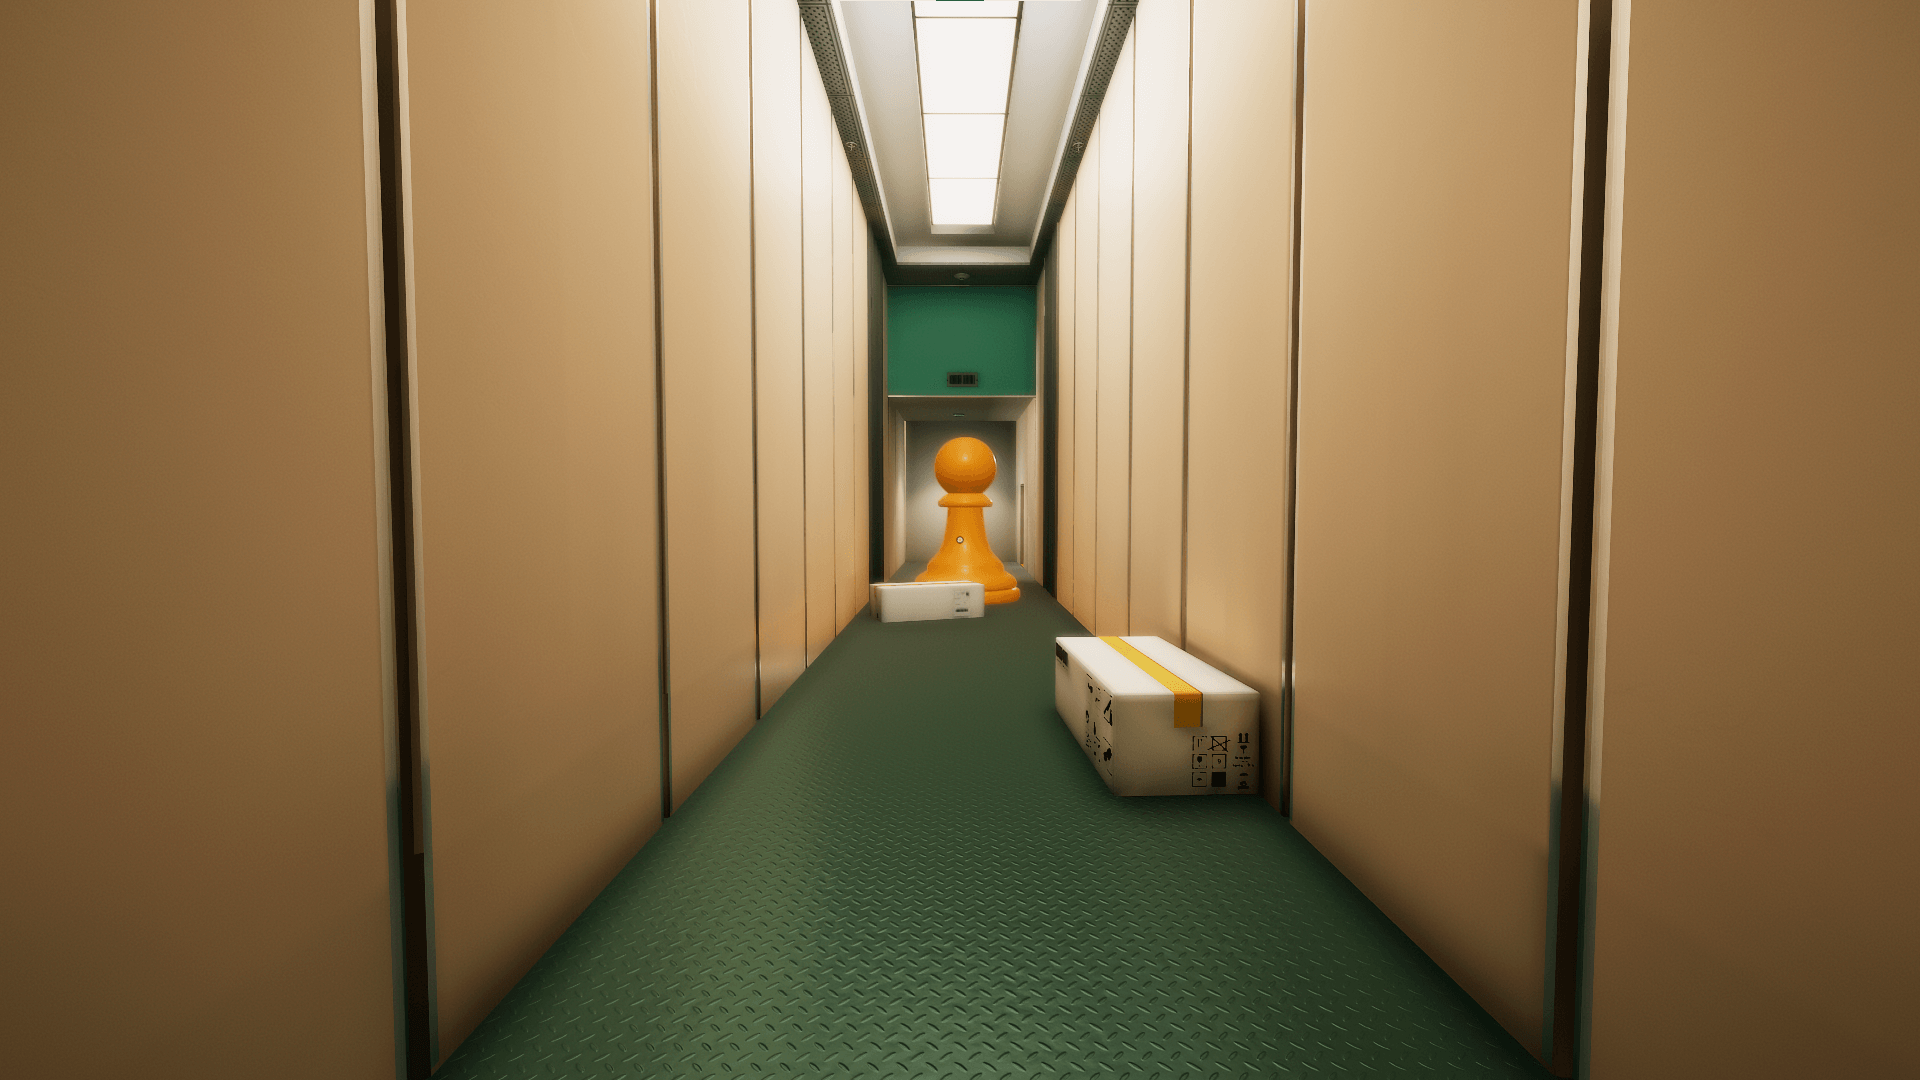 Superliminal review - stanley parable type game shows here the visual illusion